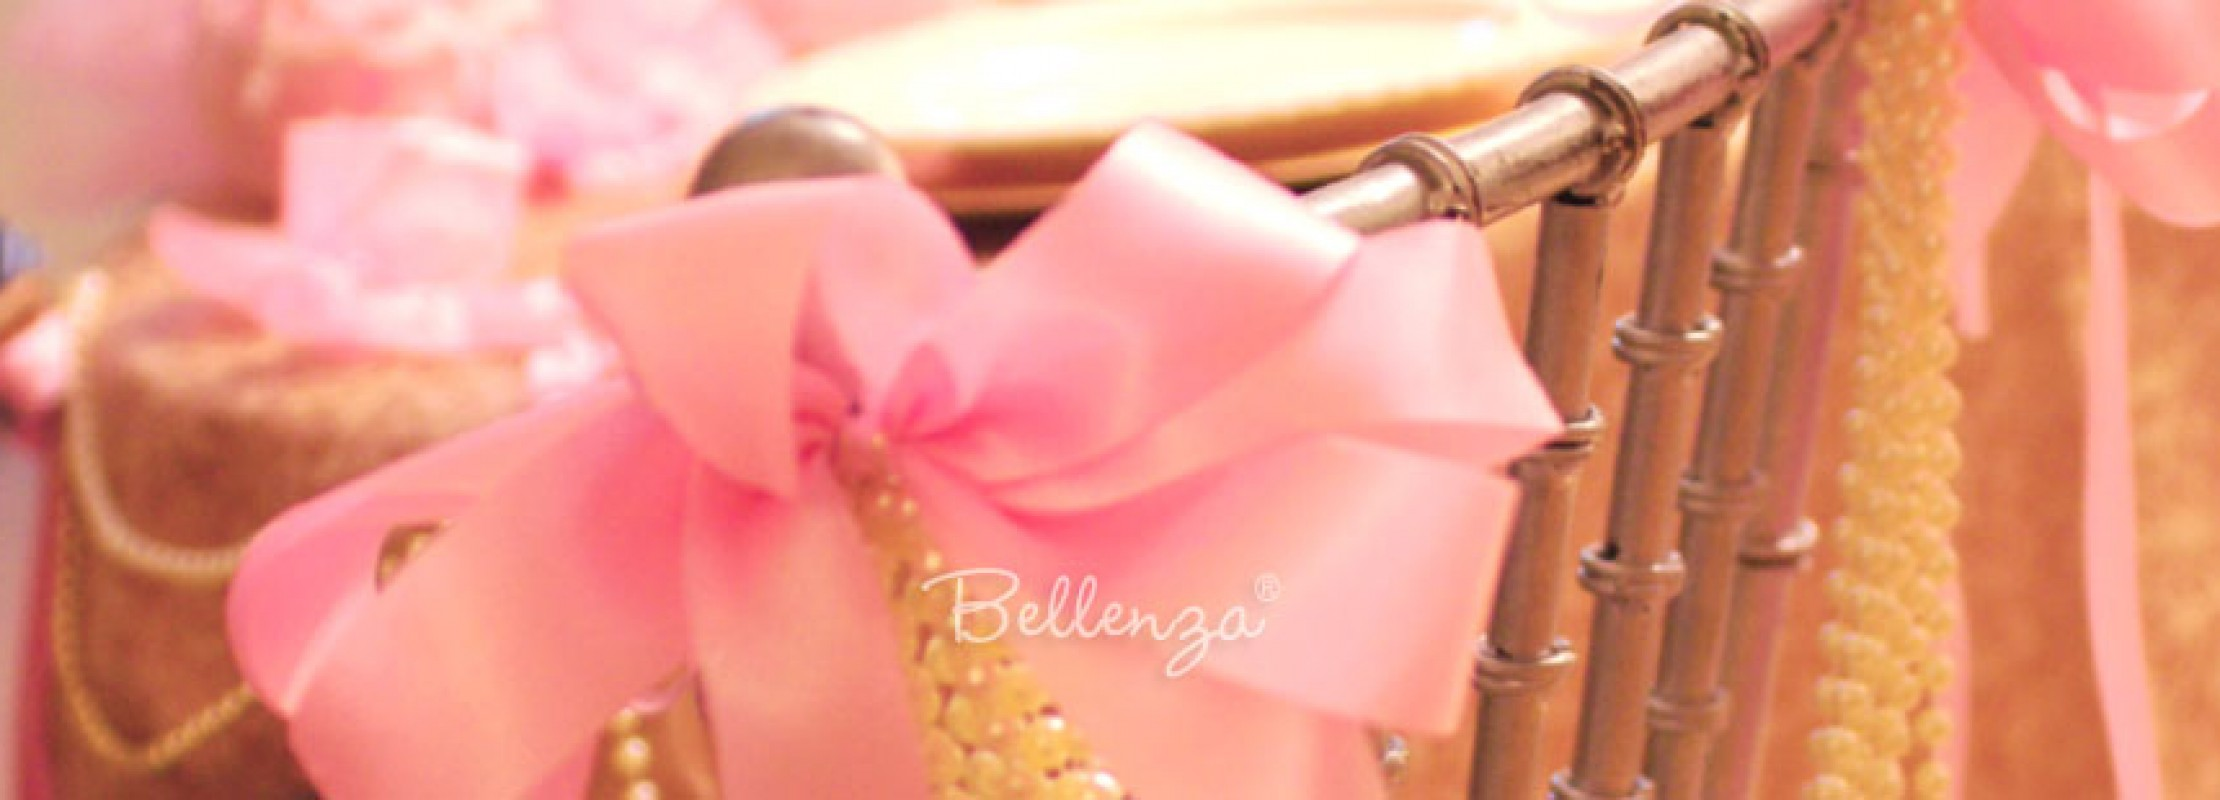 Pink rbbons and pearls. Photo by Bellenza.